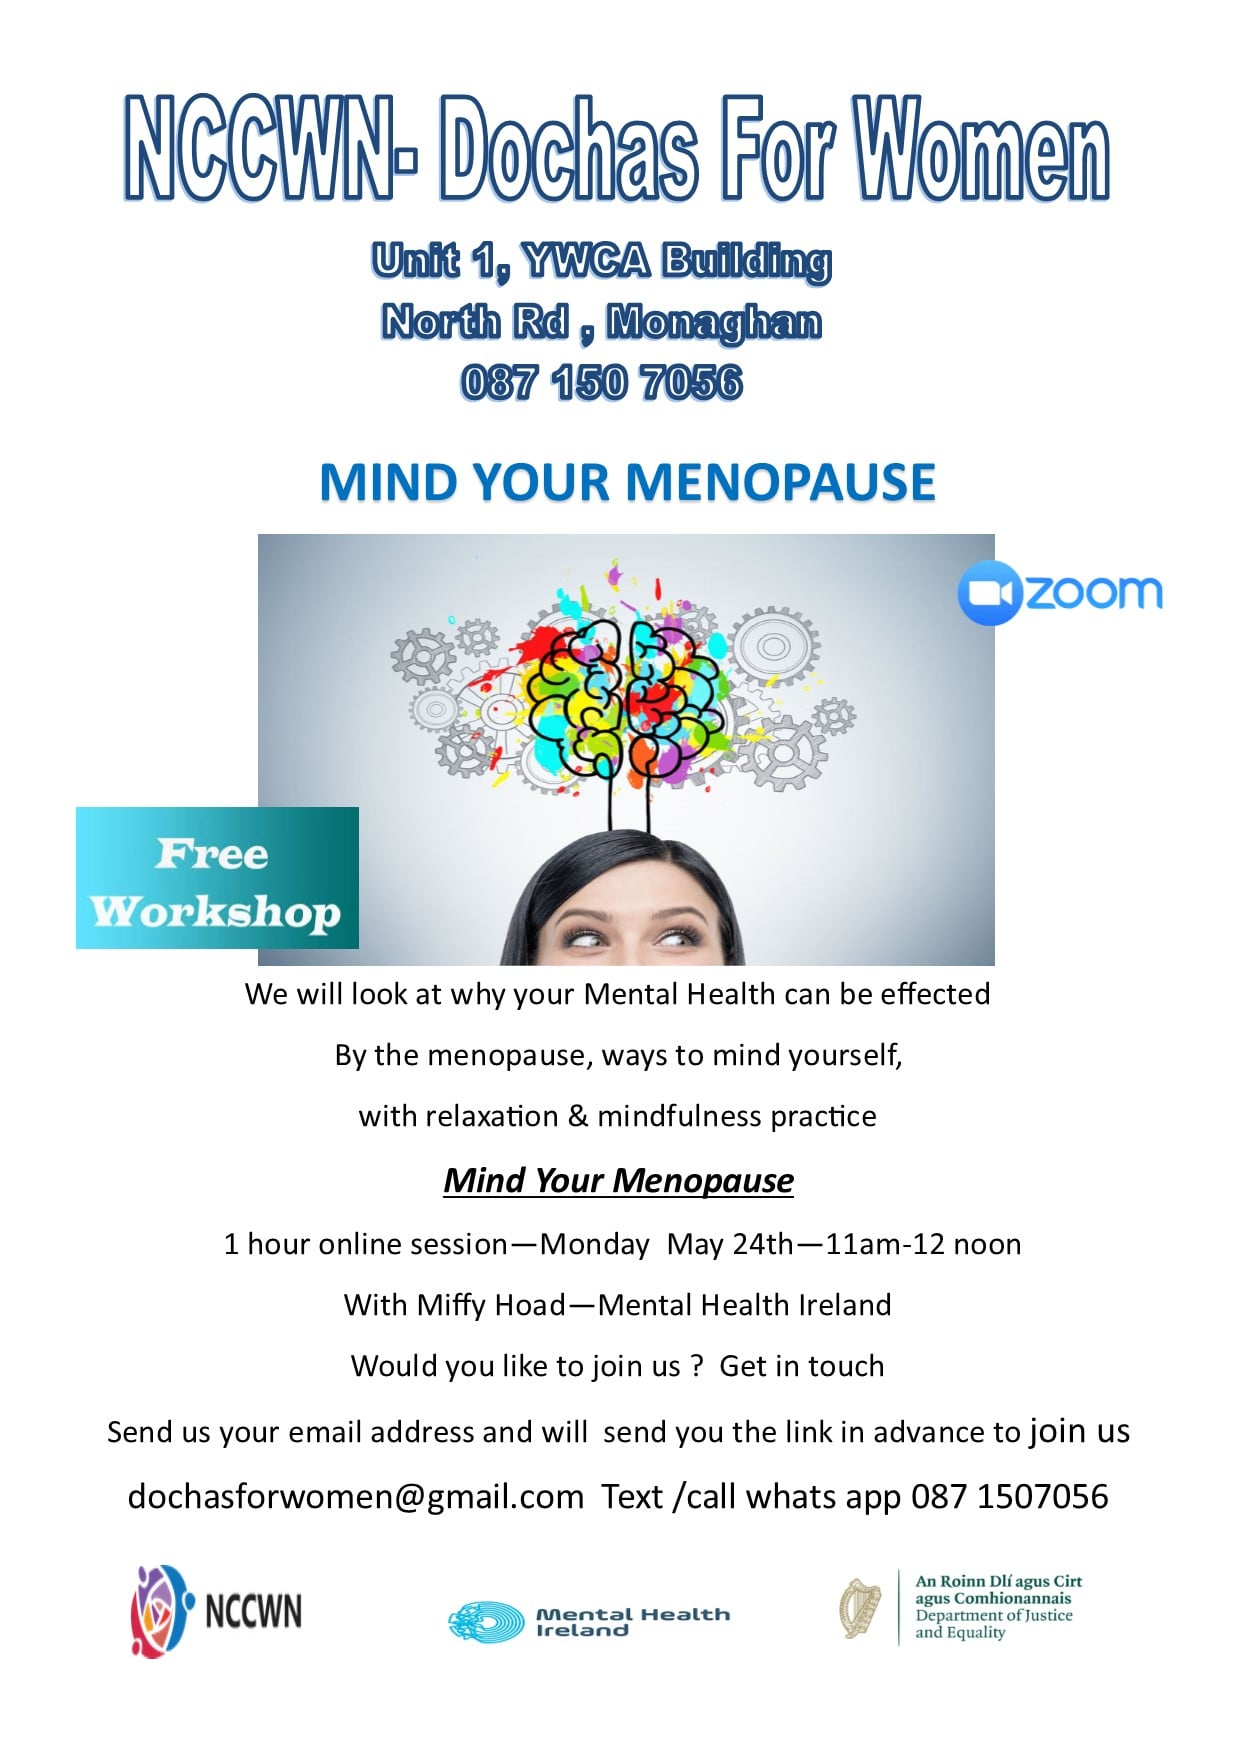 NCCWN-Dochas for Women Mind your Menopause